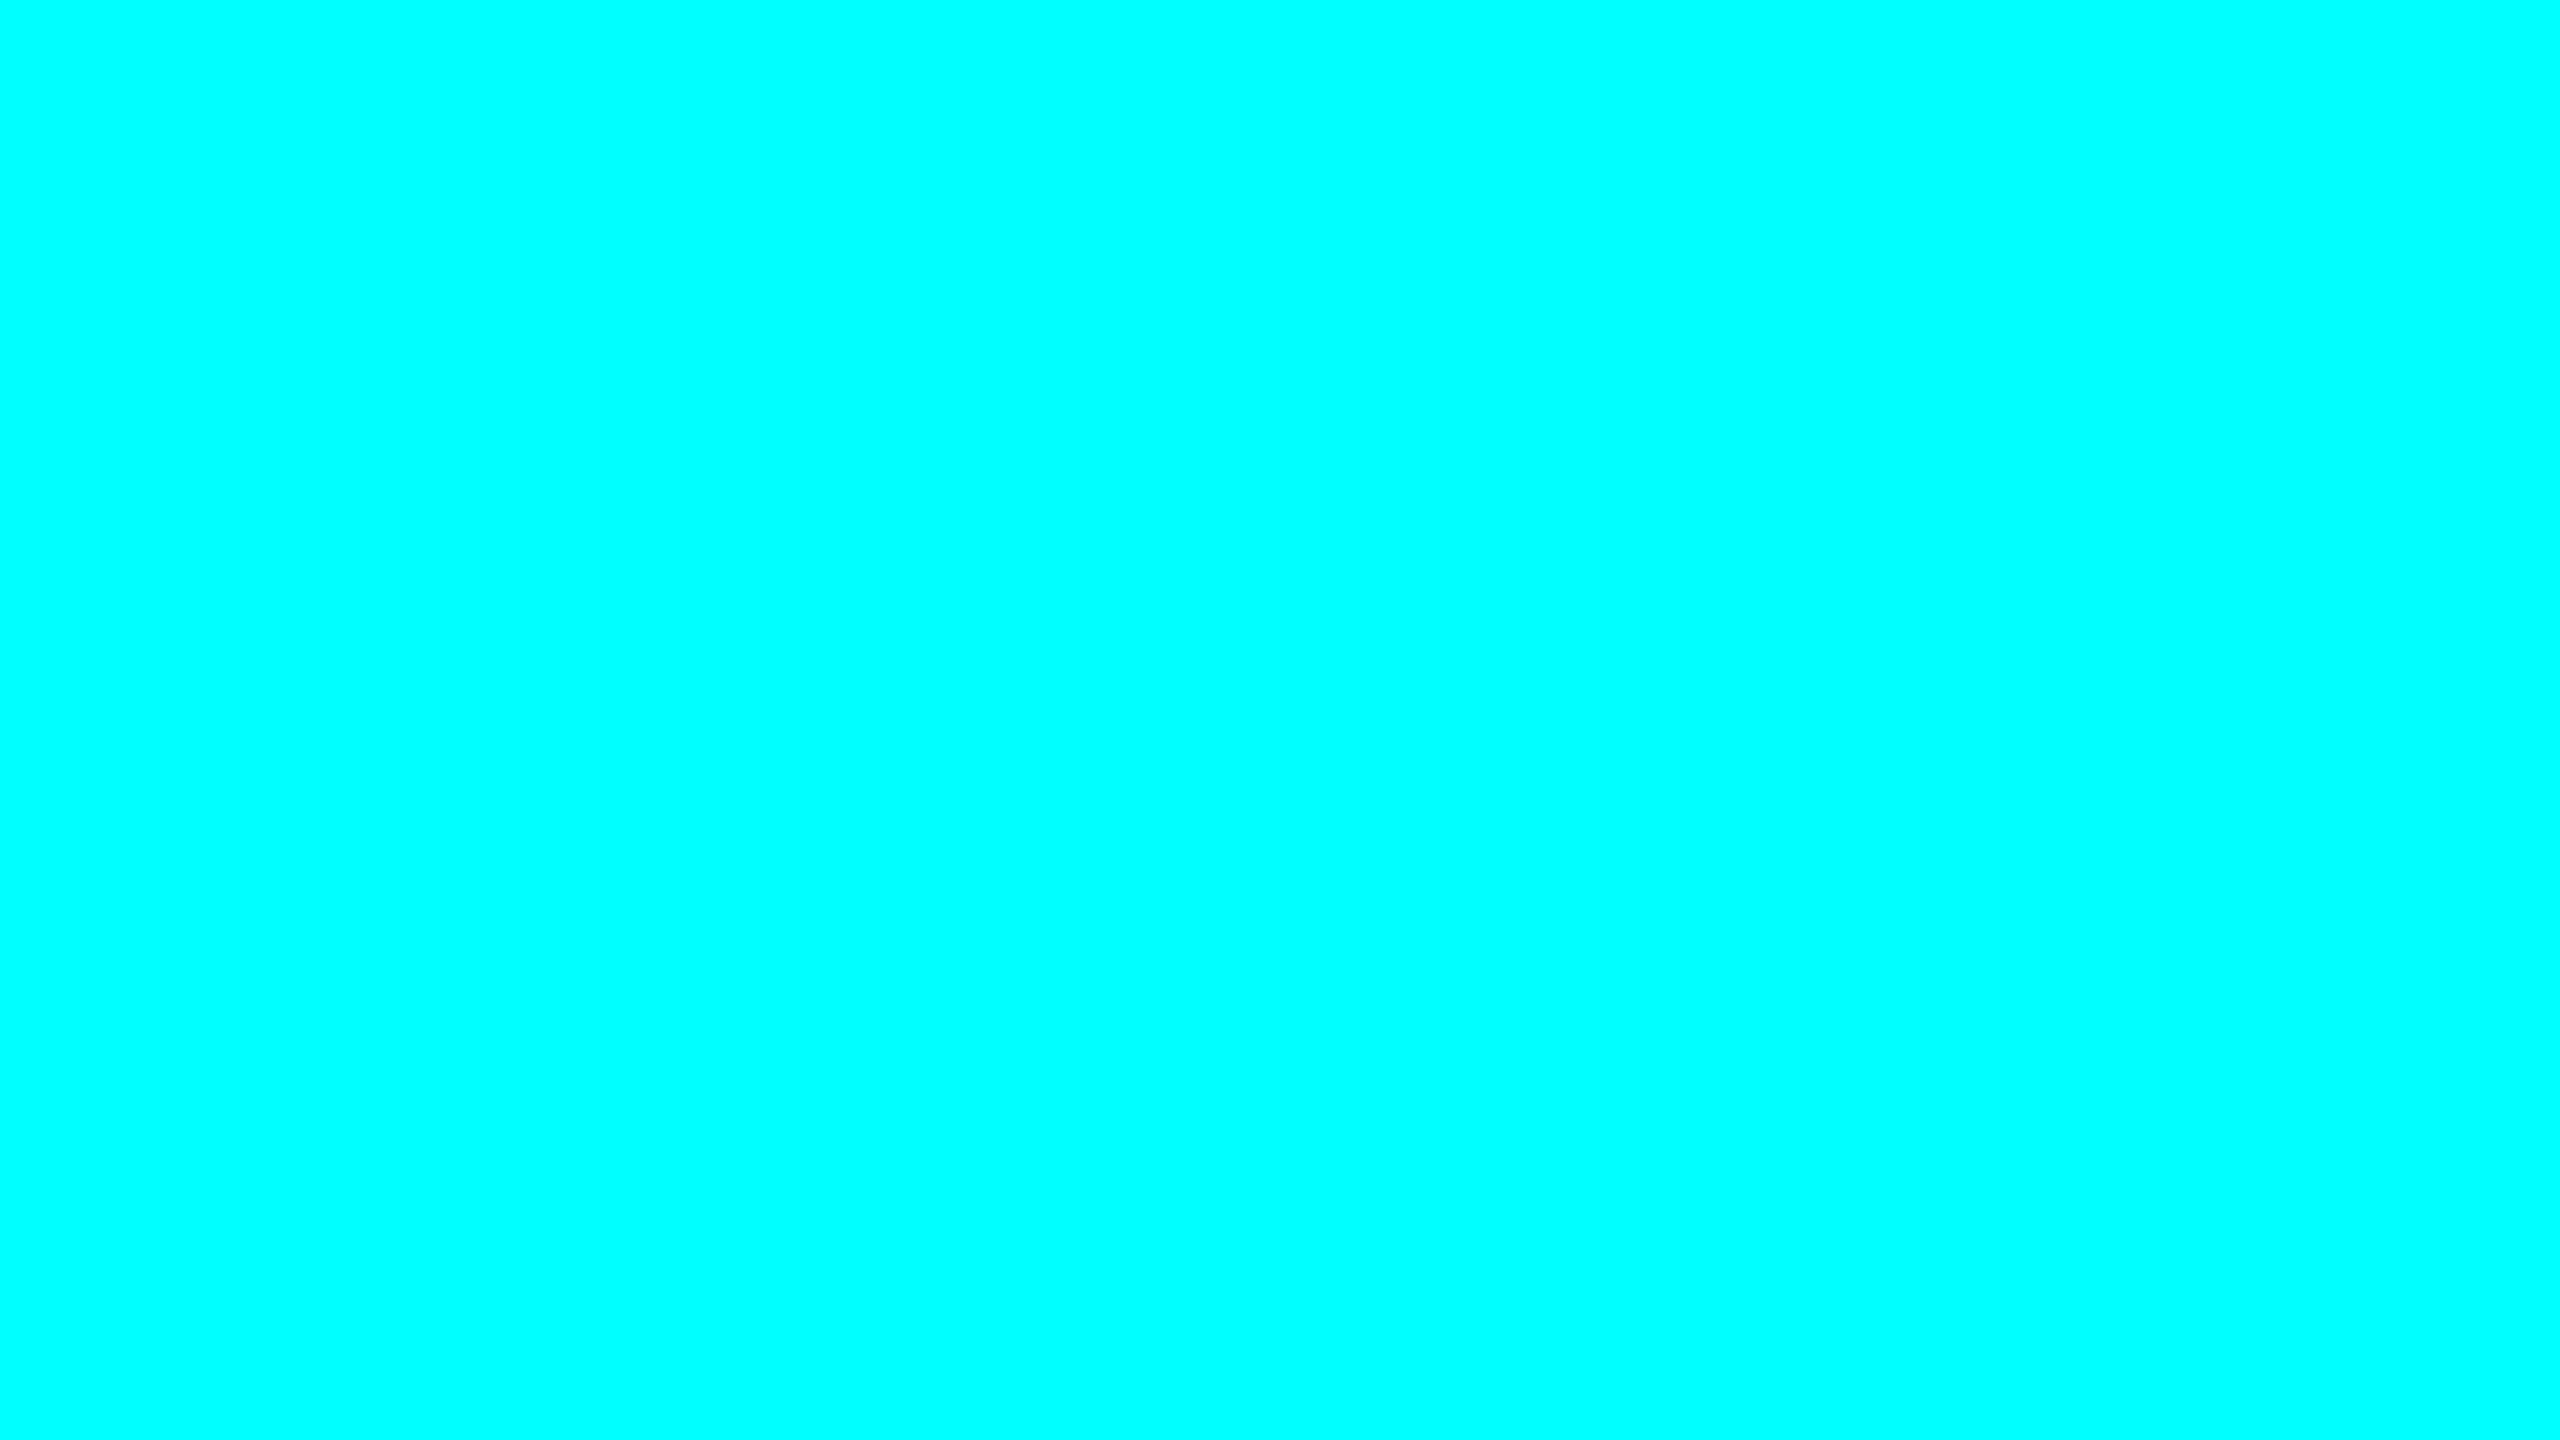 Plain teal wallpaper